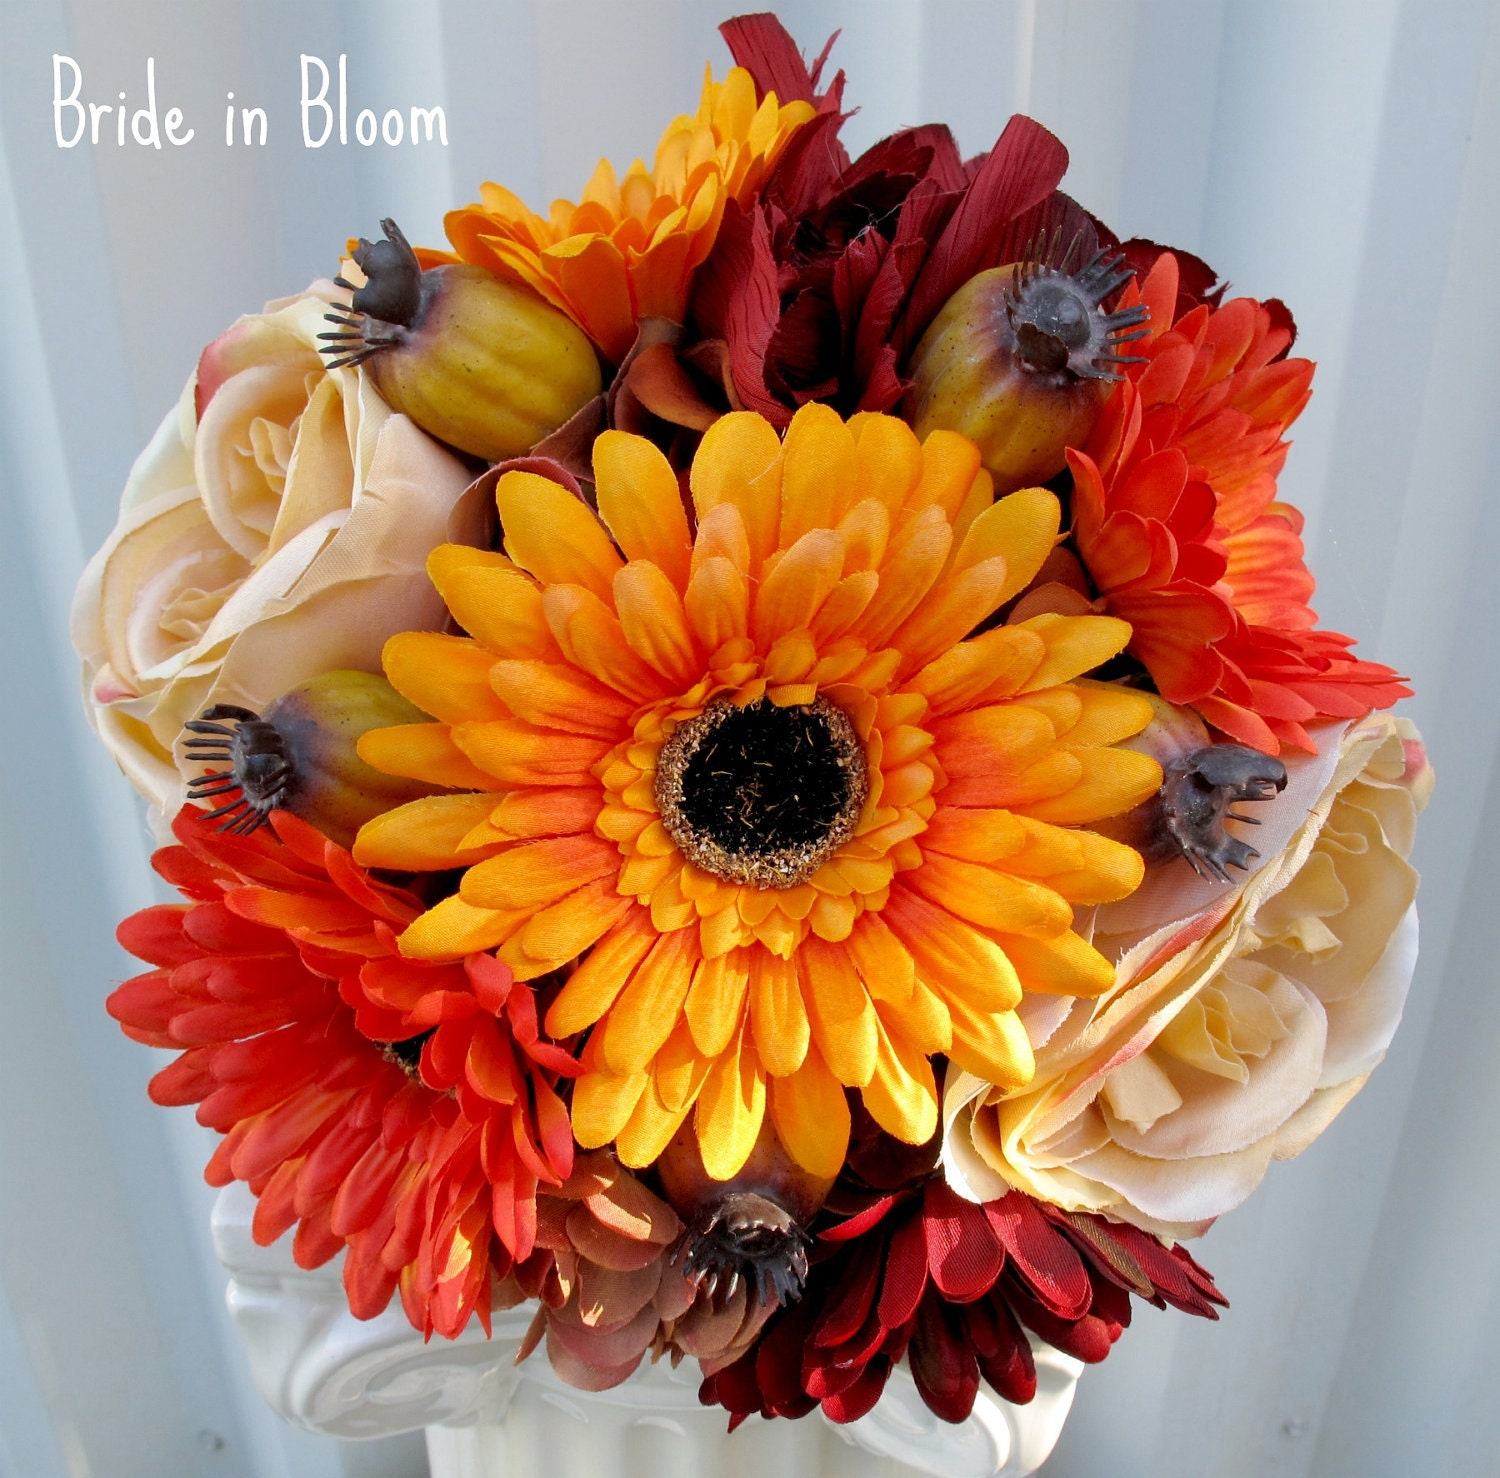 Wedding Flowers In Gerbera Daisies Wedding Flowers 2013